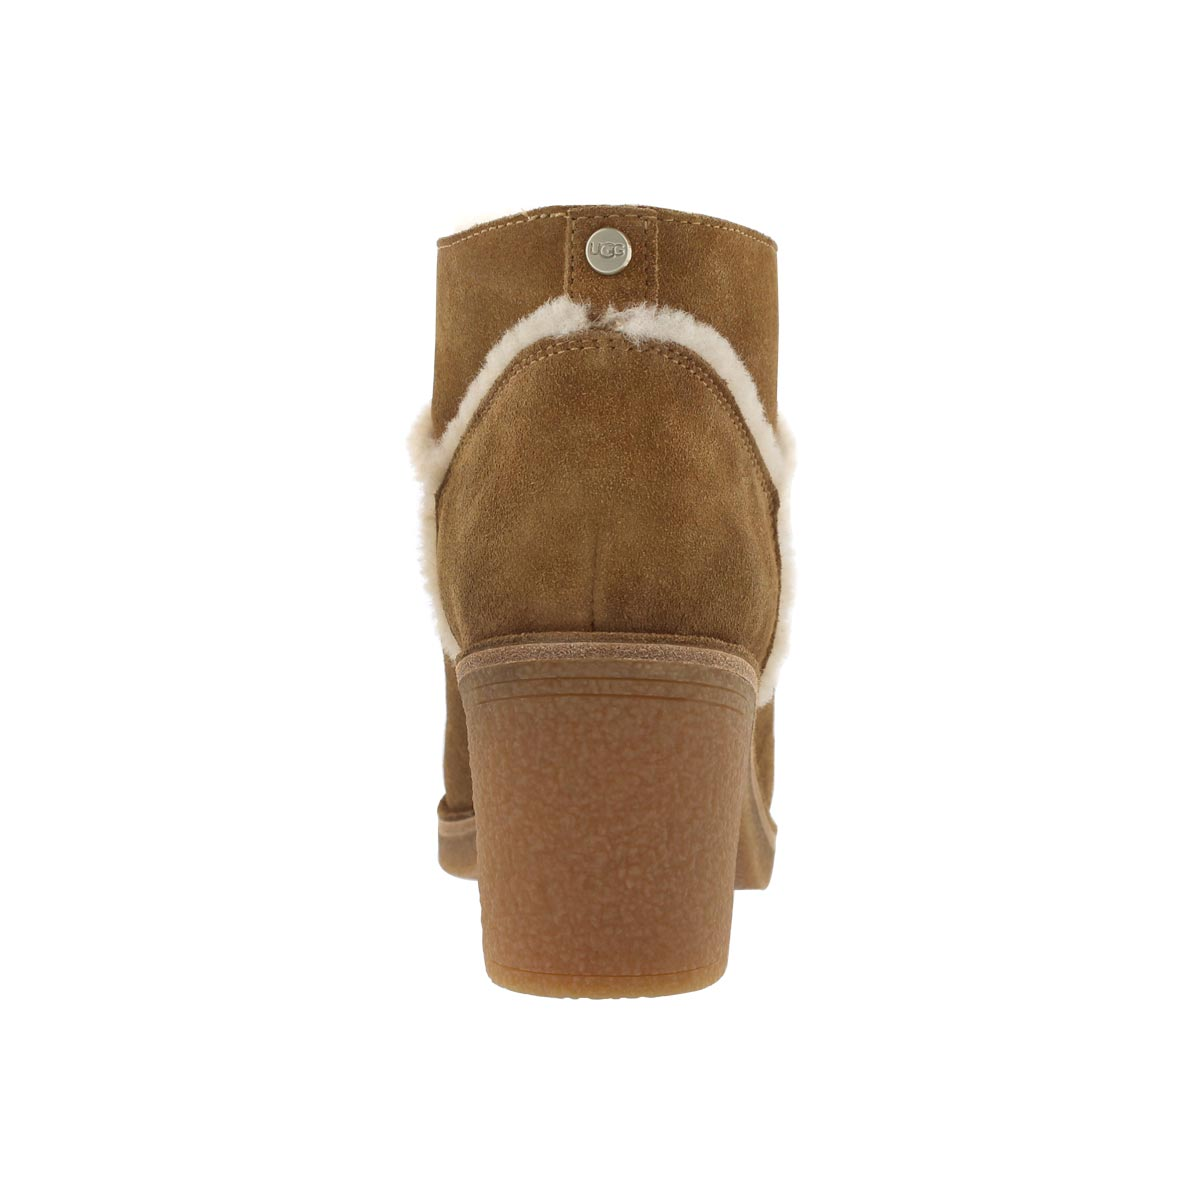 Lds Kasen chestnut casual ankle boot